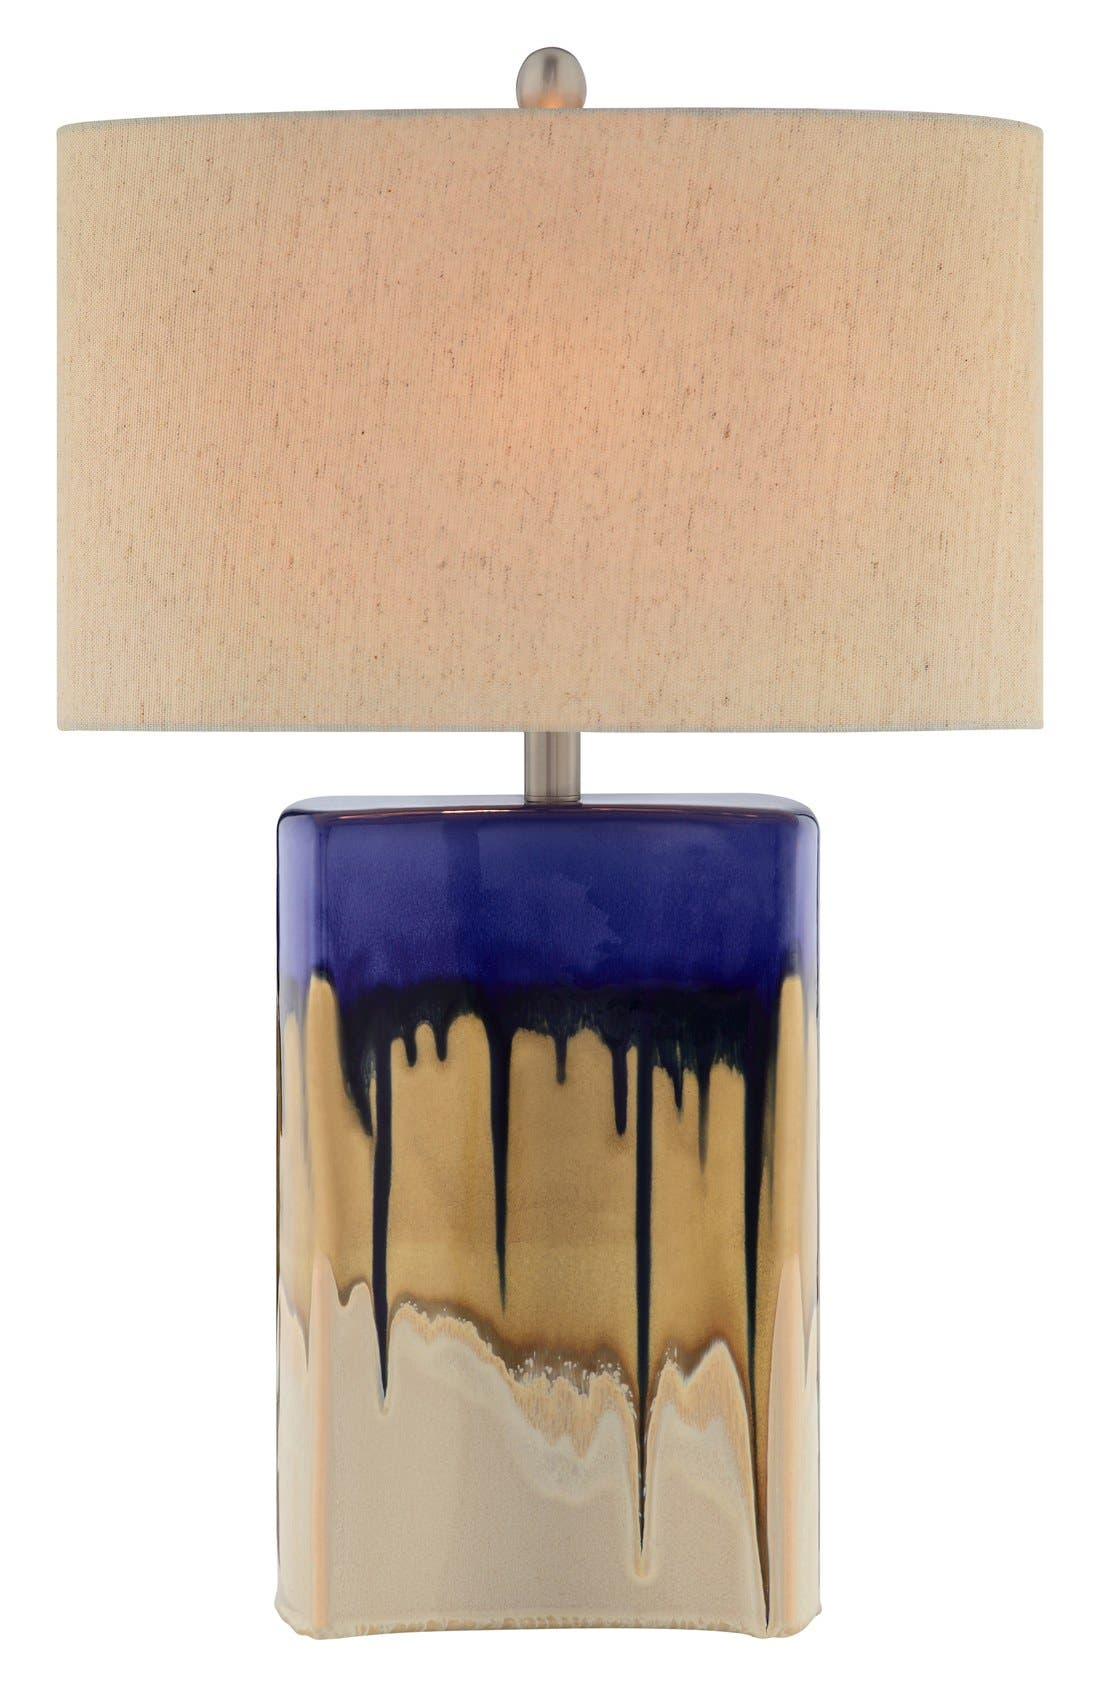 Ceramic Table Lamp,                             Main thumbnail 1, color,                             250